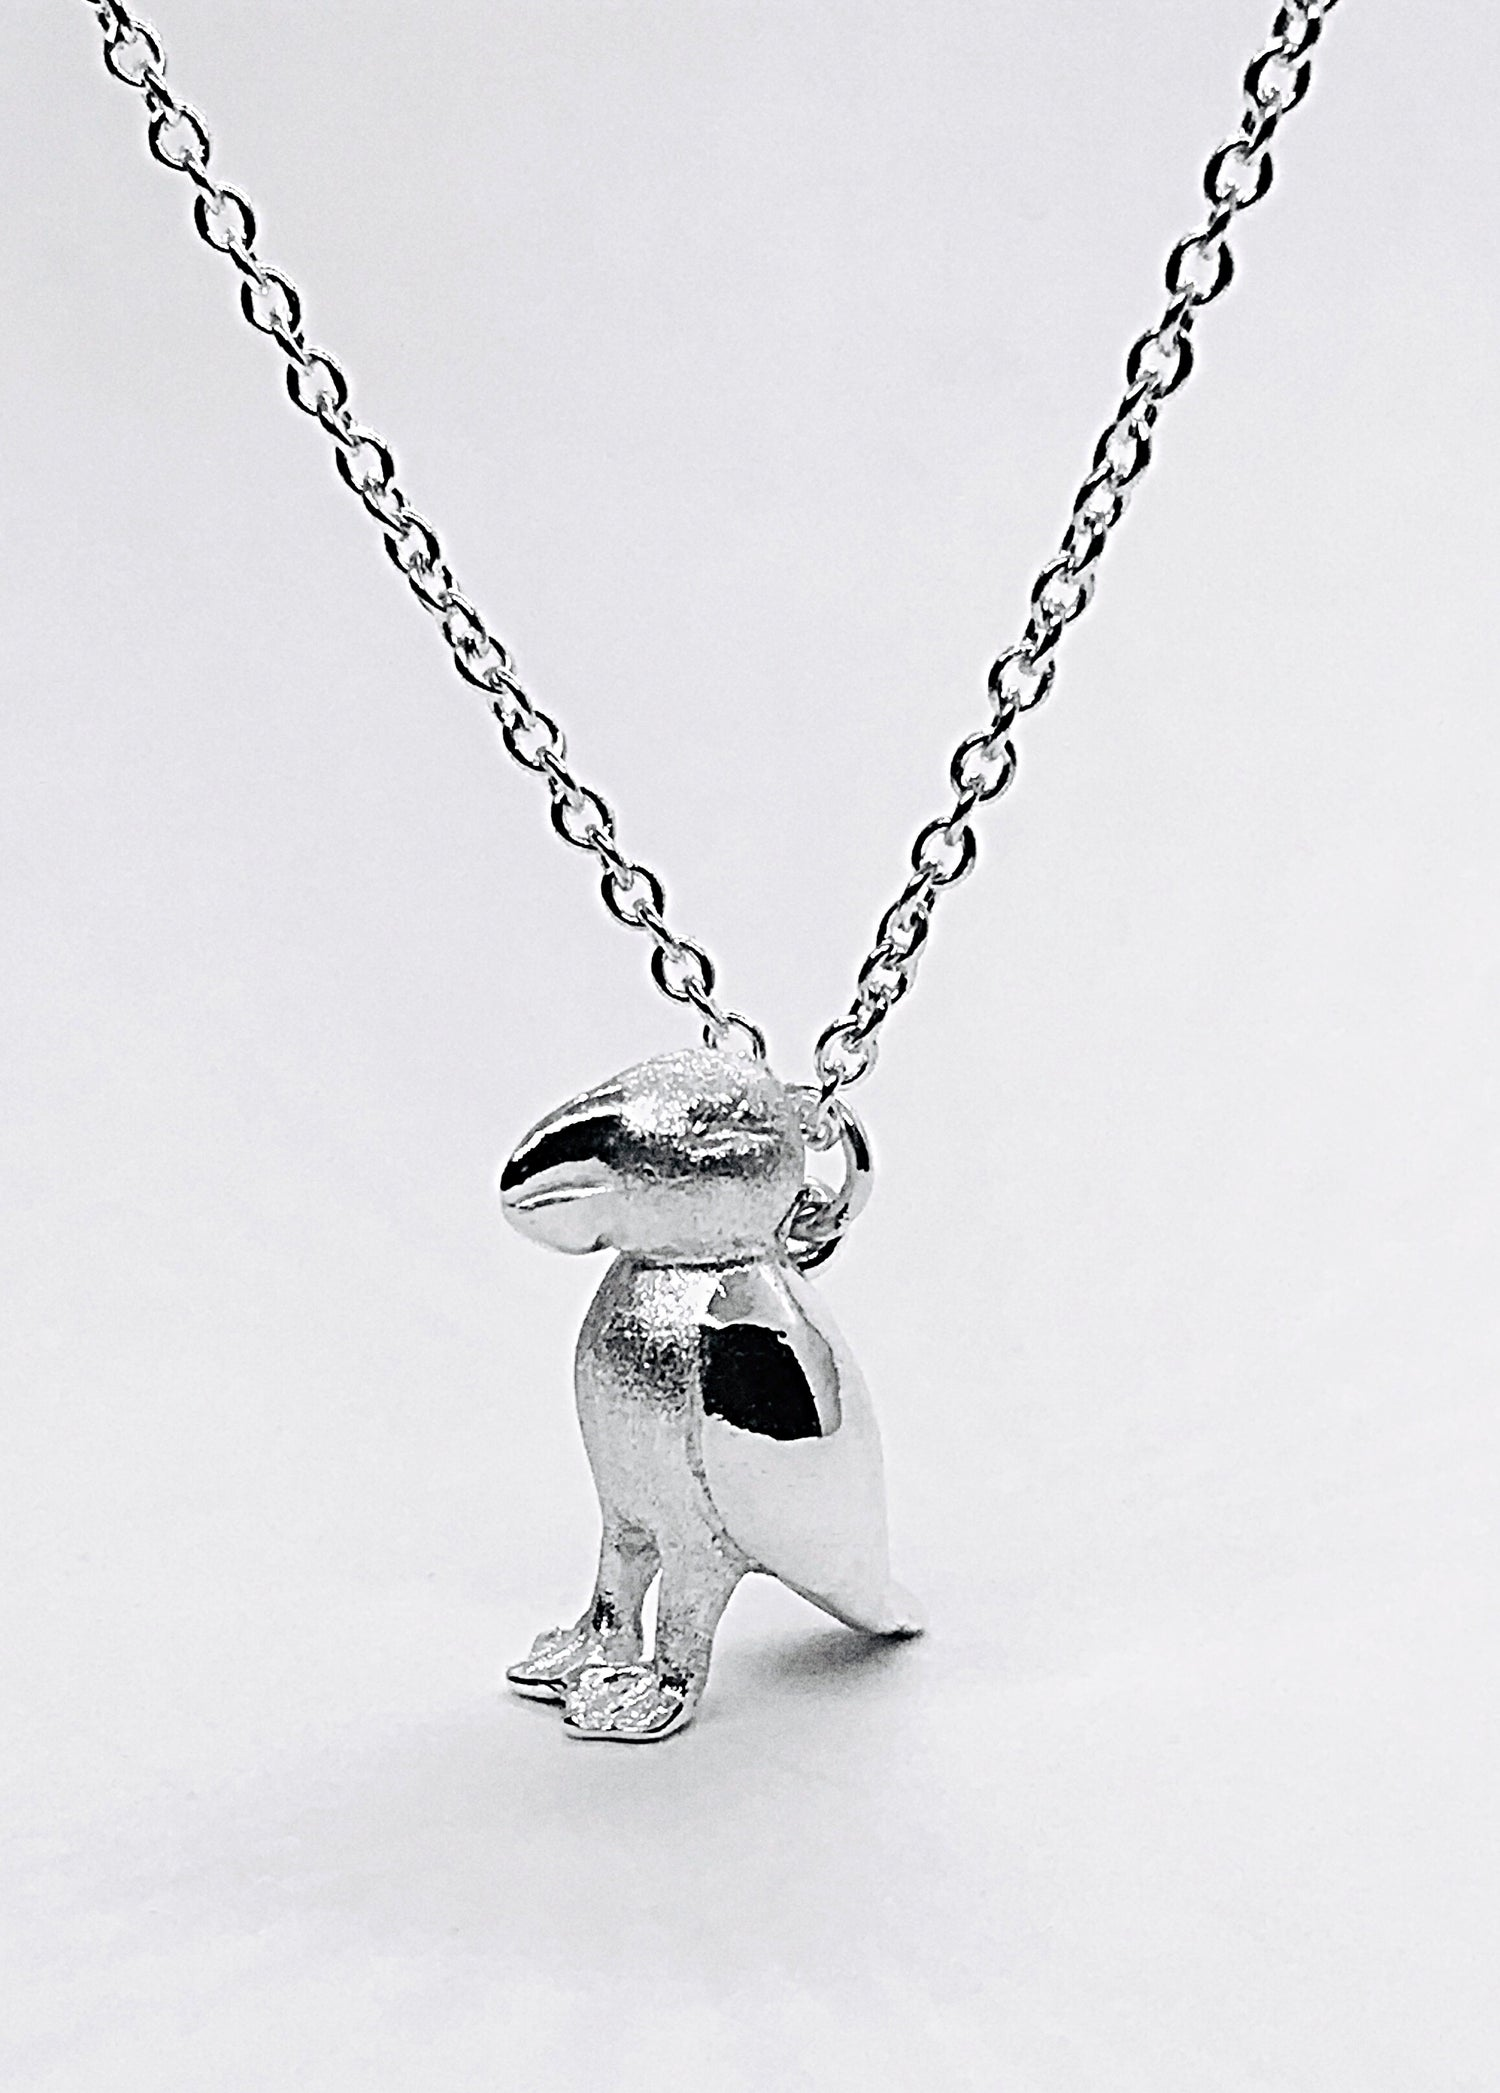 Image of Puffin pendant